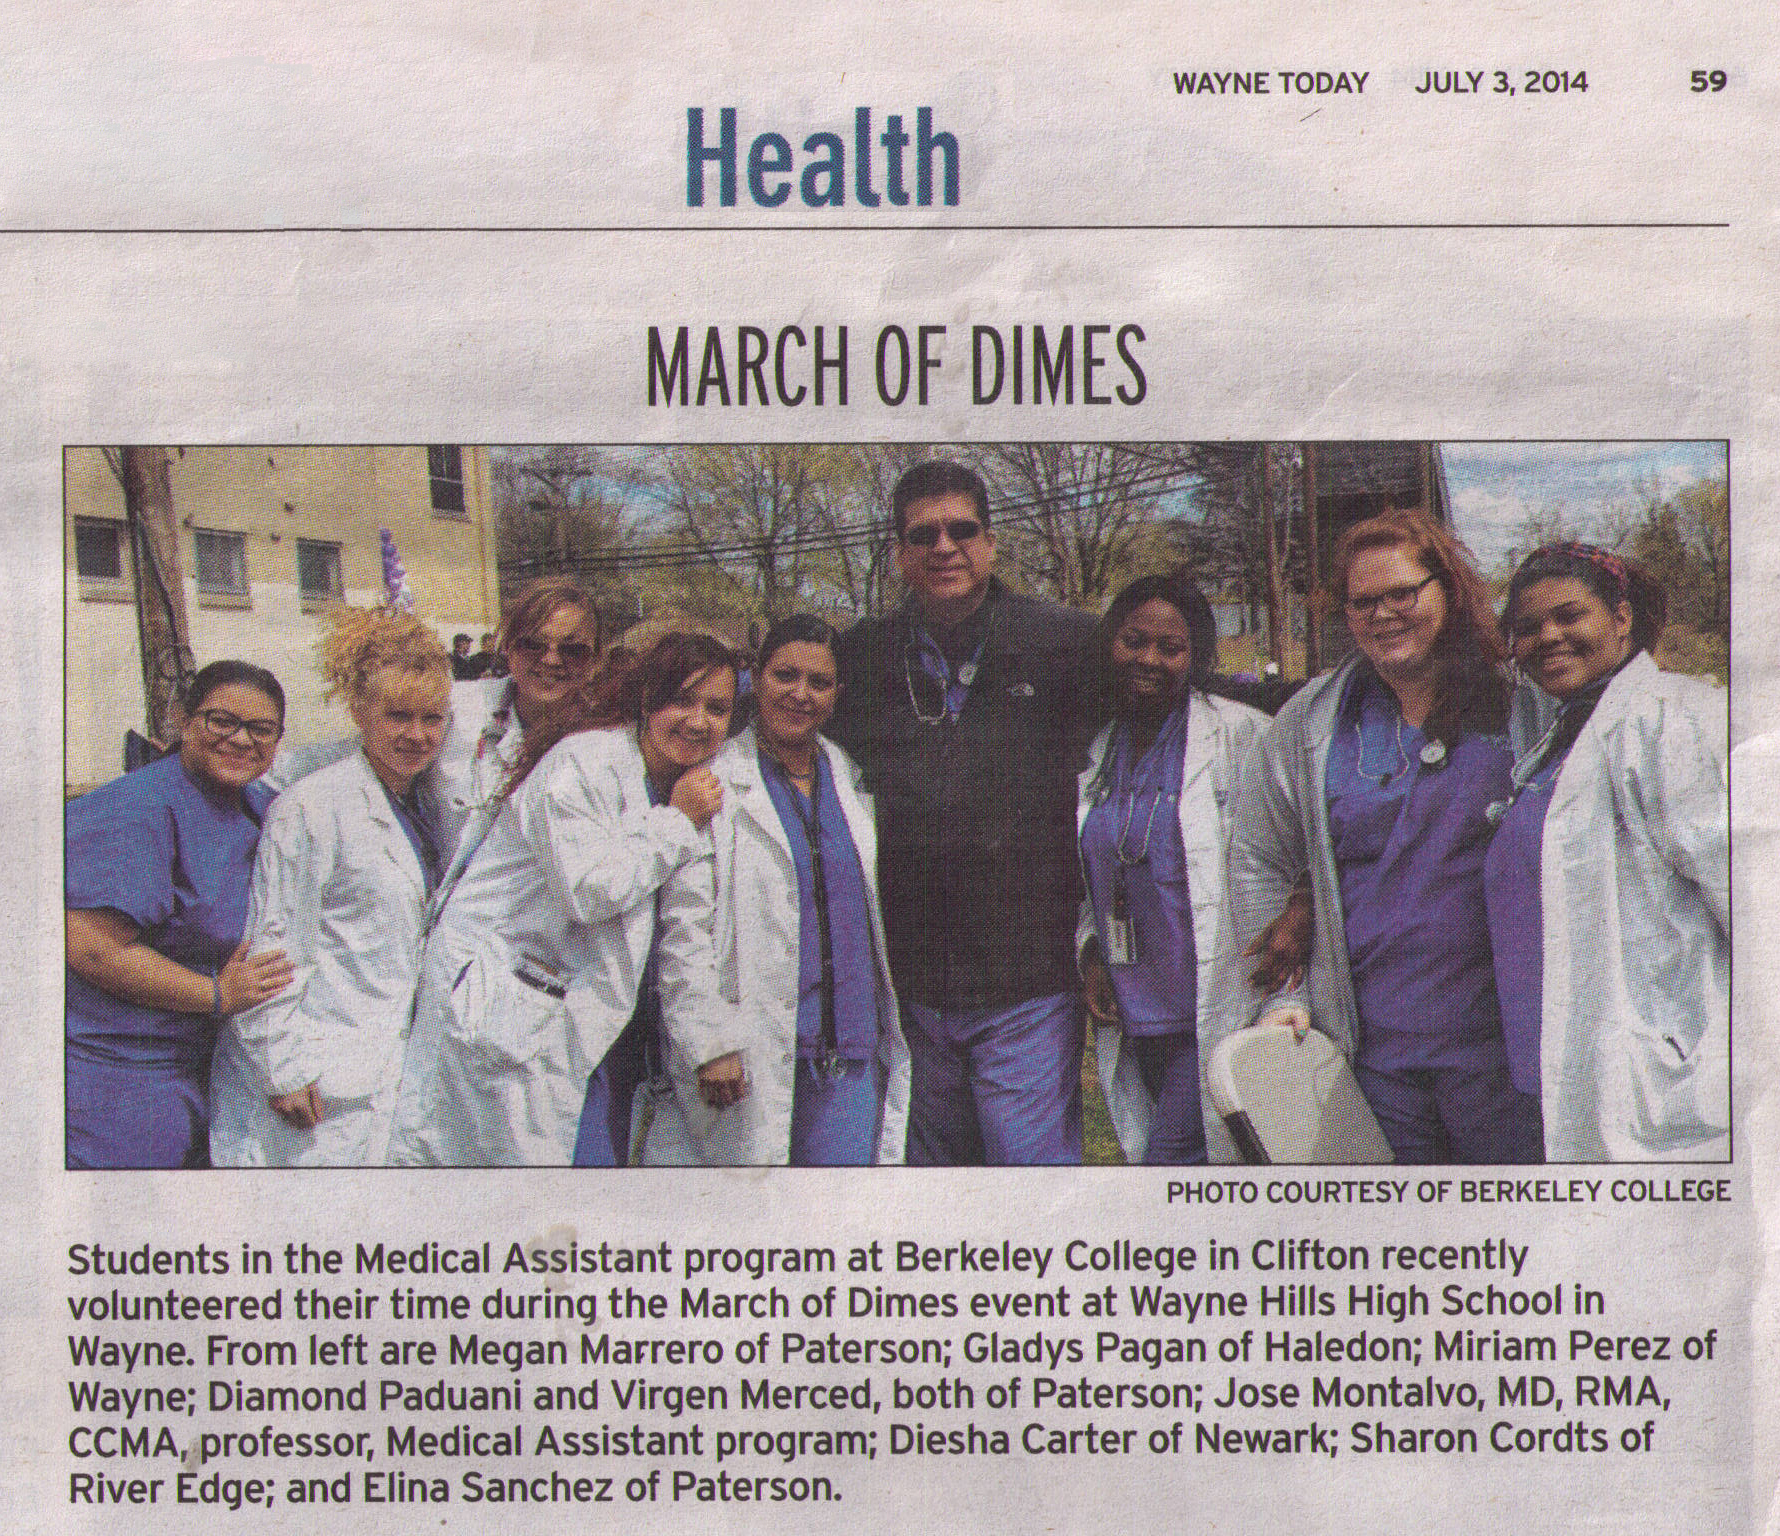 Medical Assistant students from Berkeley College in Clifton at the March of Dimes event at Wayne Hills High School